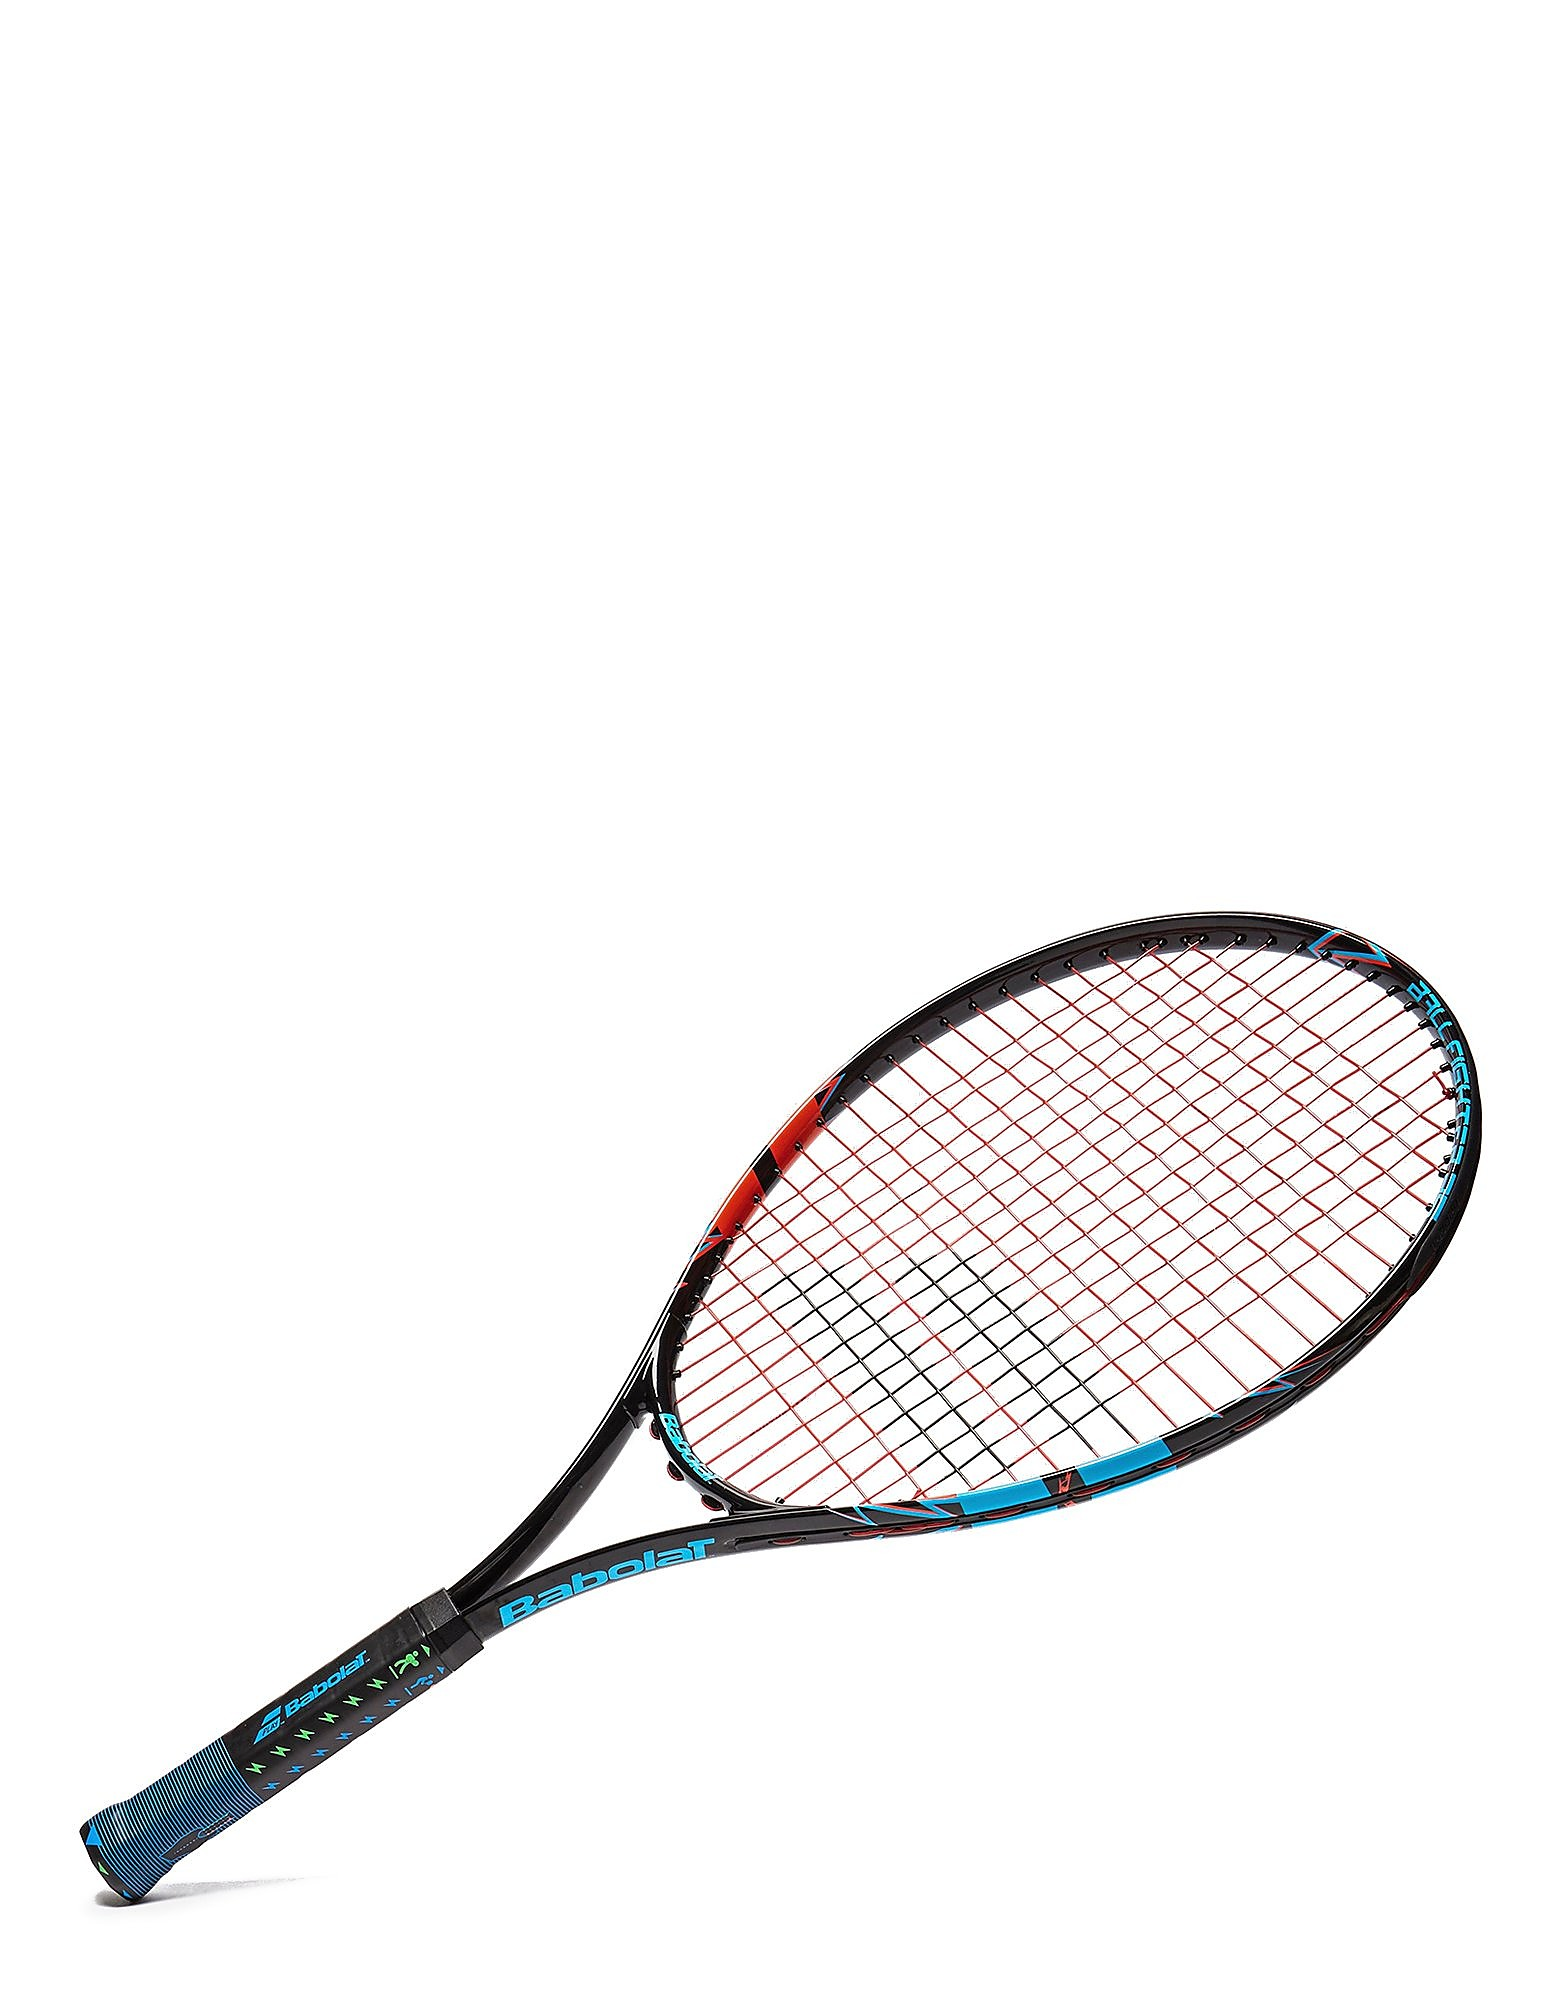 Babolat Ballfighter 25 Tennis Racket Junior